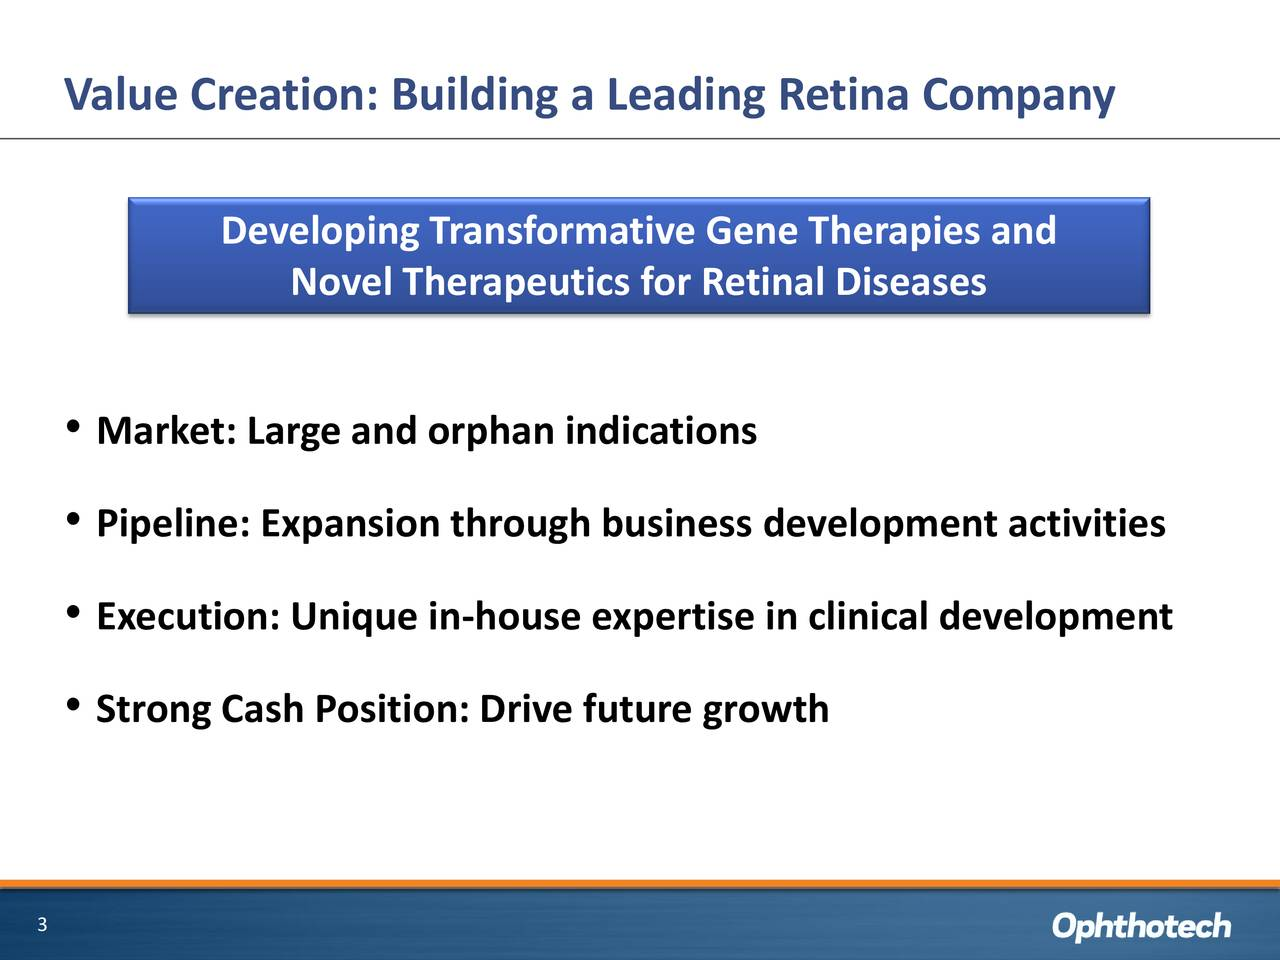 Developing Transformative Gene Therapies and Novel Therapeutics for Retinal Diseases • Market: Large and orphan indications • Pipeline: Expansion through business development activities • Execution: Unique in-house expertise in clinical development • Strong Cash Position: Drive future growth 3